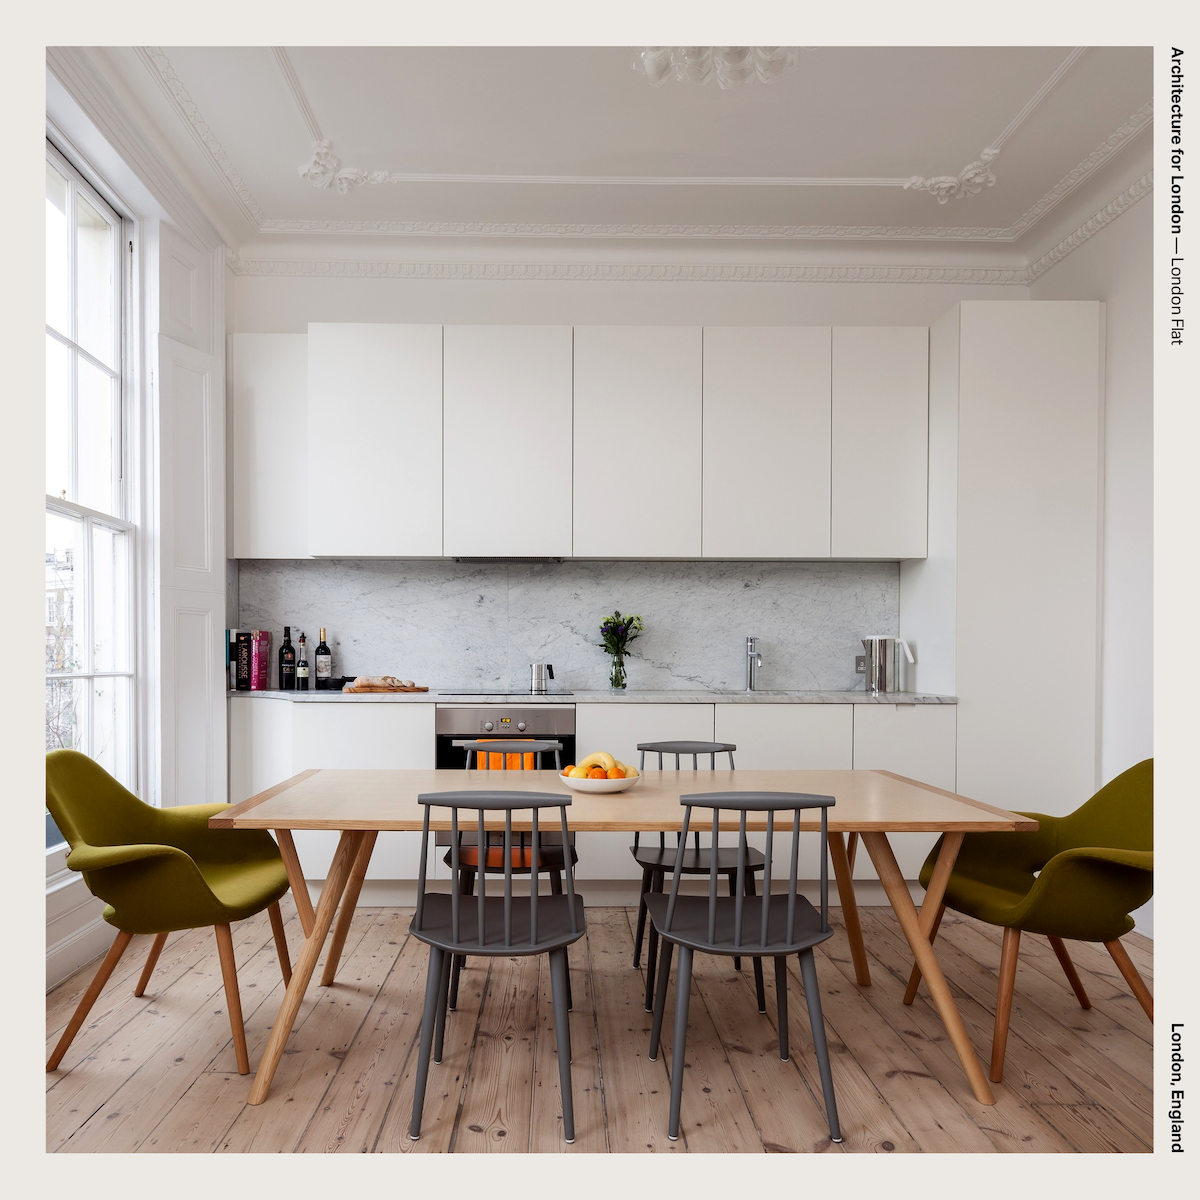 Architecture for London — London Flat